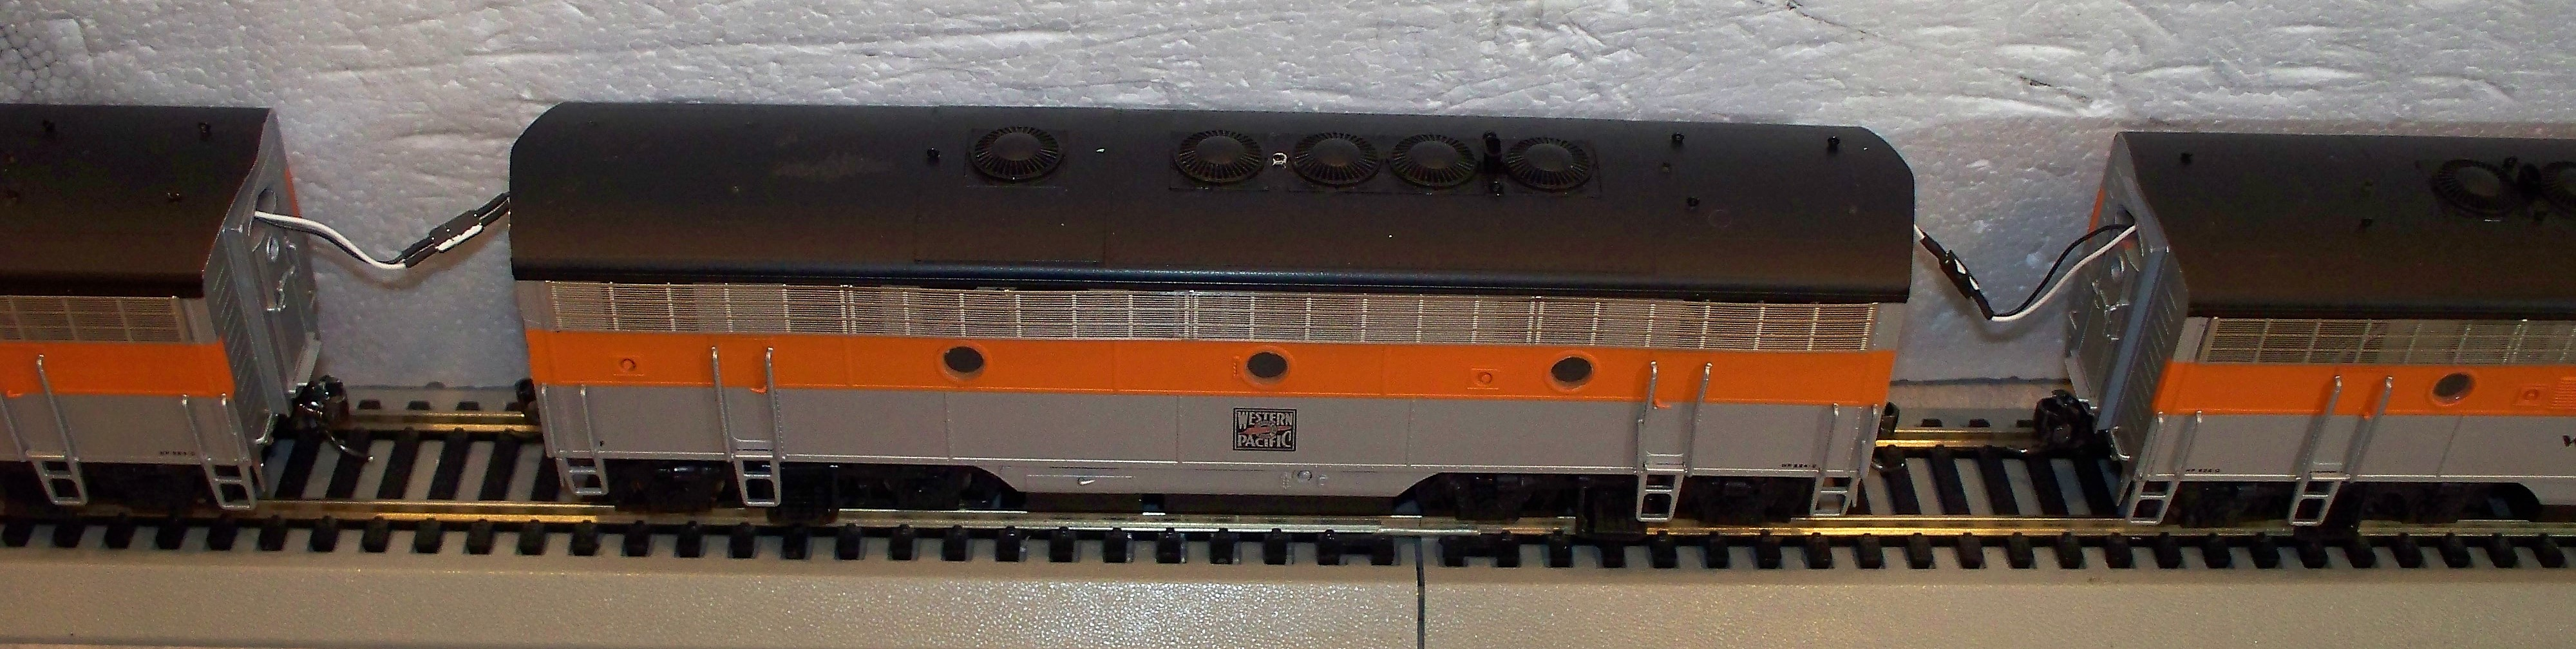 Installs Of Ho Scale Remotecontrolthrottlescom O Gauge Track Wiring Any Engine Can Run Better On Battery Power No More Stalls Switch Points Complex Or Cleaning Dirty Tracks